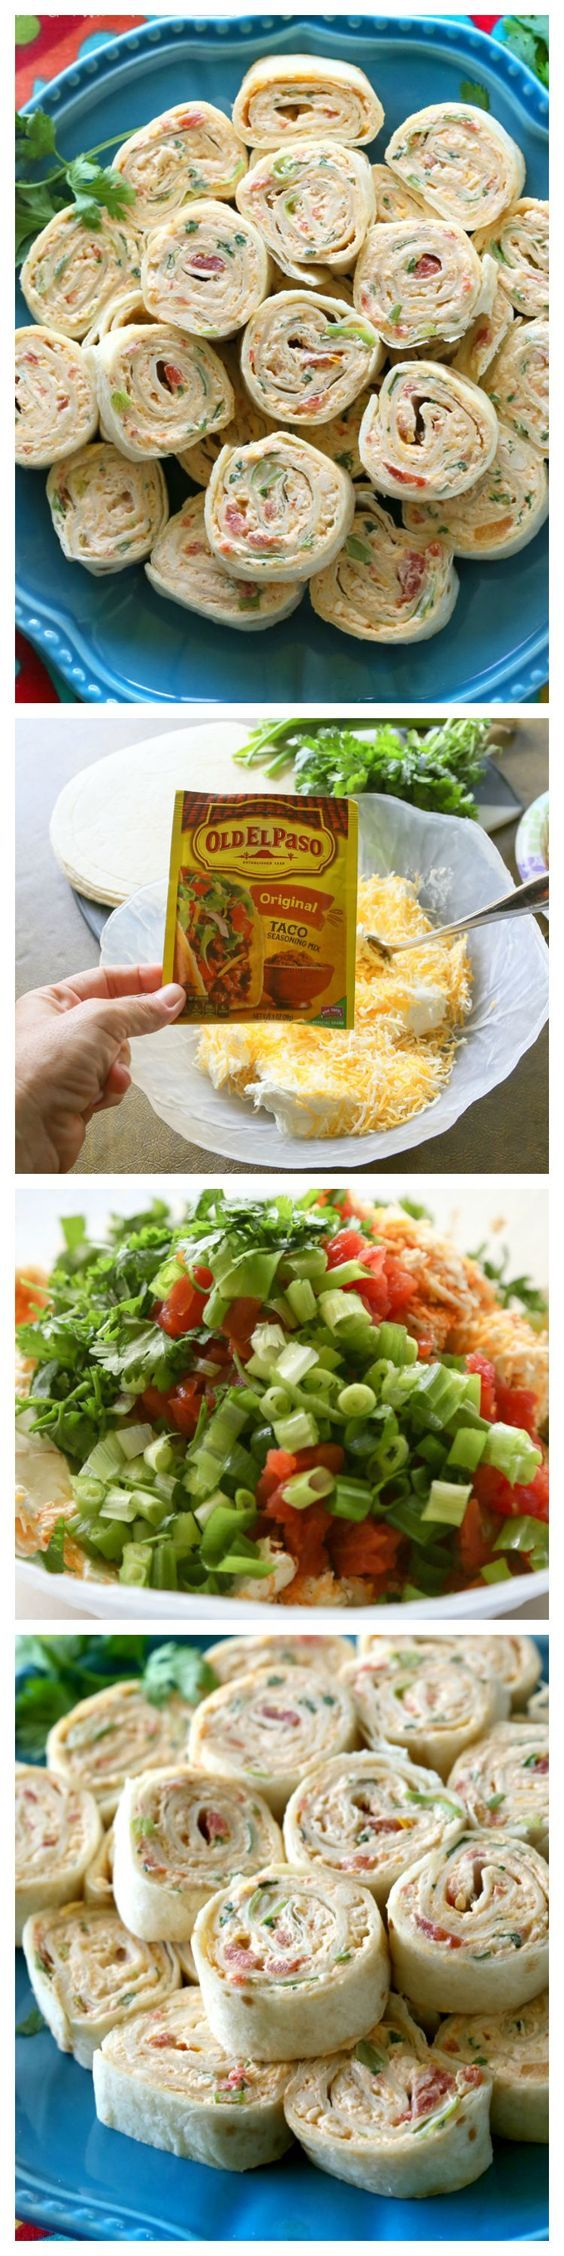 These Chicken Enchilada Roll Ups are a great appetizer for parties! Easy to make ahead and easy to serve. the-girl-who-ate-everything.com: